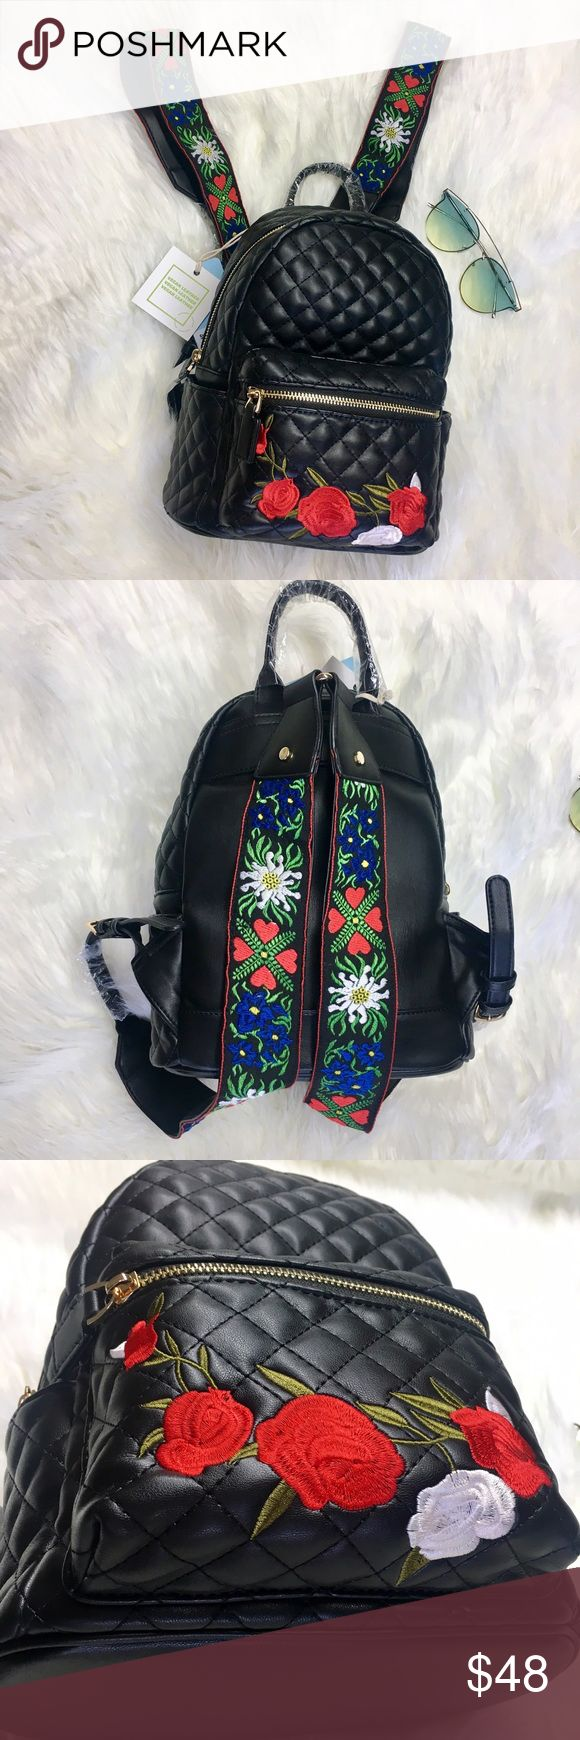 "Rose Mini Backpack Beautiful quilted vegan leather mini backpack with patchwork detail and embroidered straps. Make a statement this summer, everywhere you go! Perfect for festival season! Backpack measures 11"" (from top handle to bottom) by 9"" Bags Backpacks"